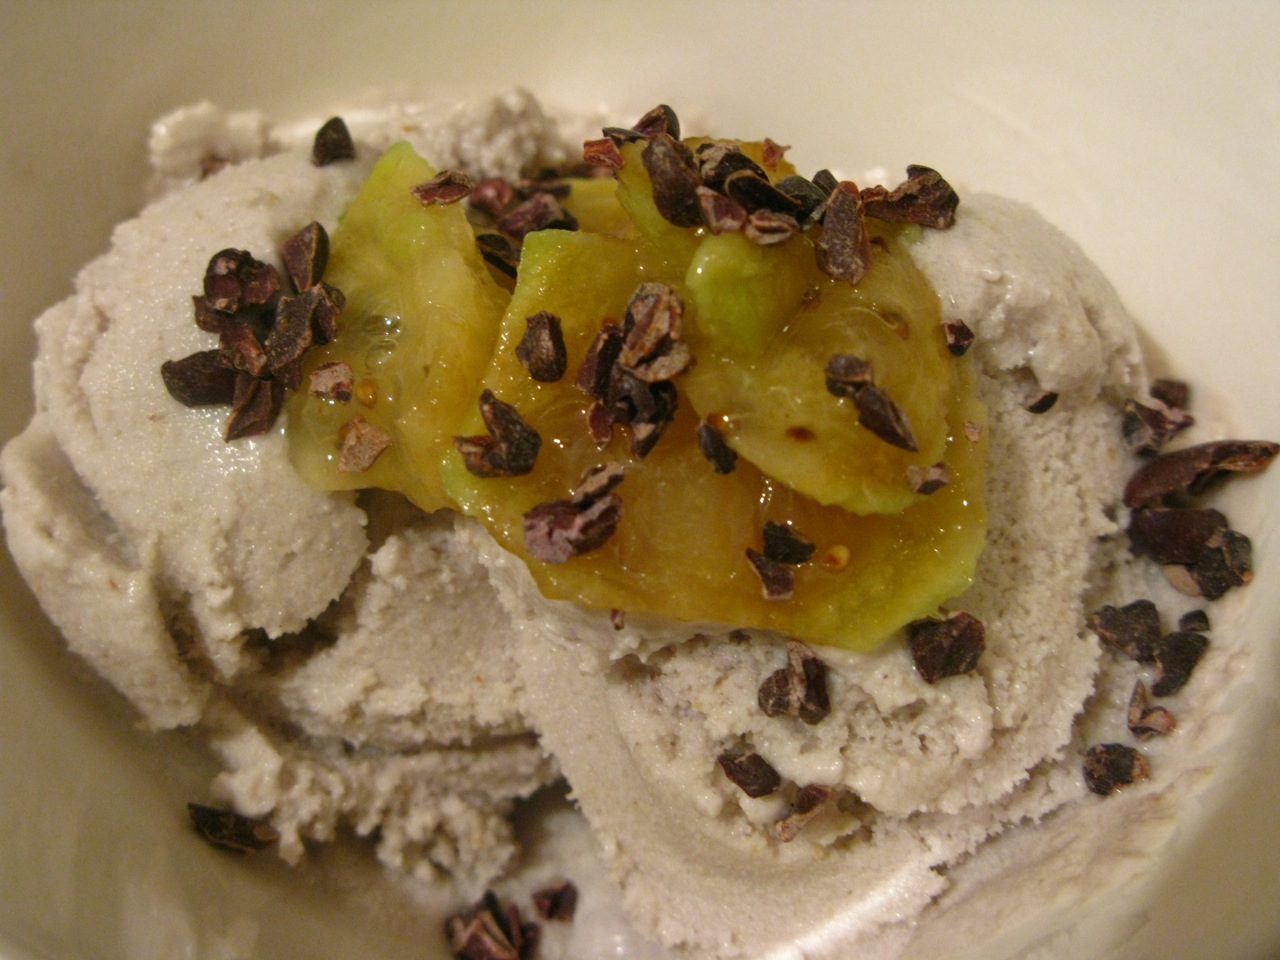 Feijoa & Manuka Honey Icecream